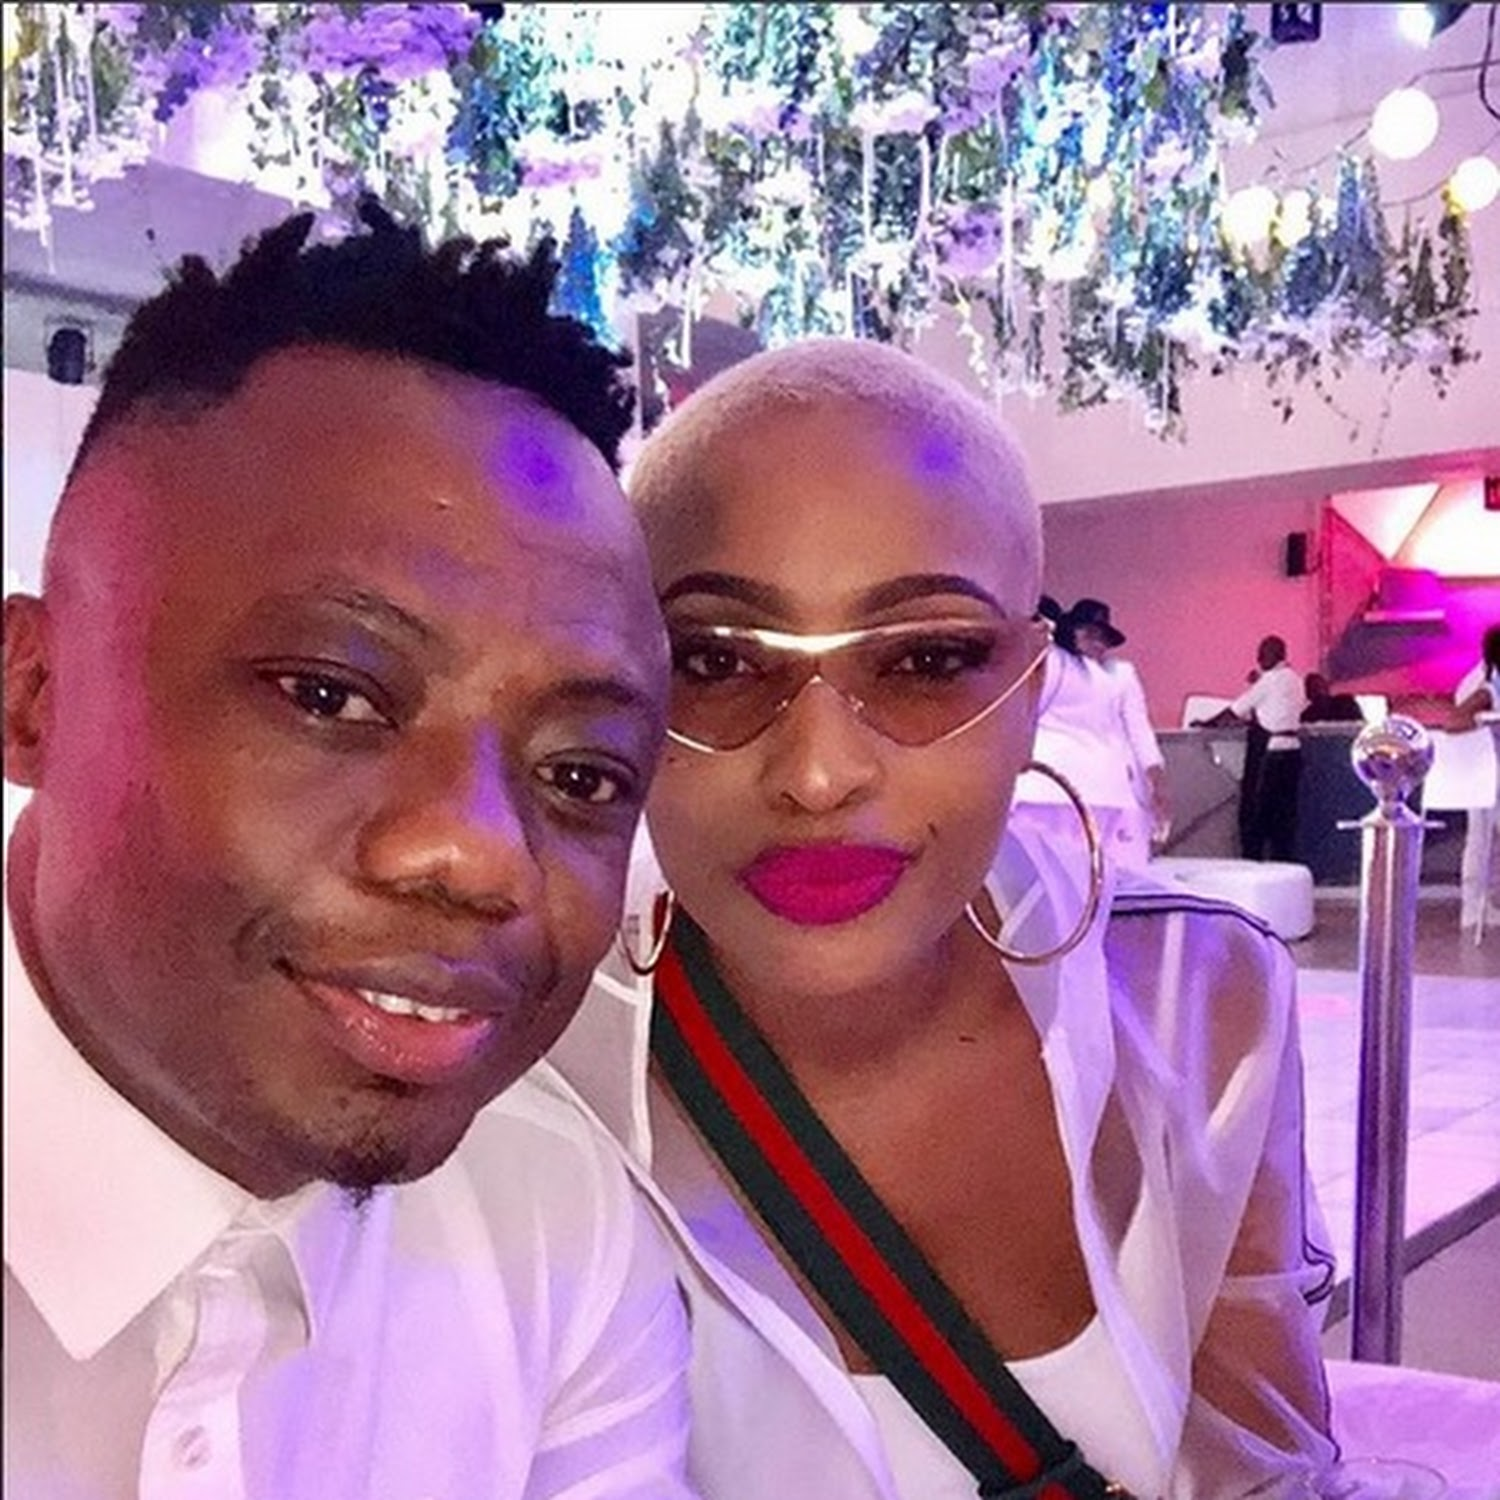 He goes out of his way to try and help. Watch Mafikizolo Defends Dj Tira S Wife Gugu Against Bad Attitude Hate